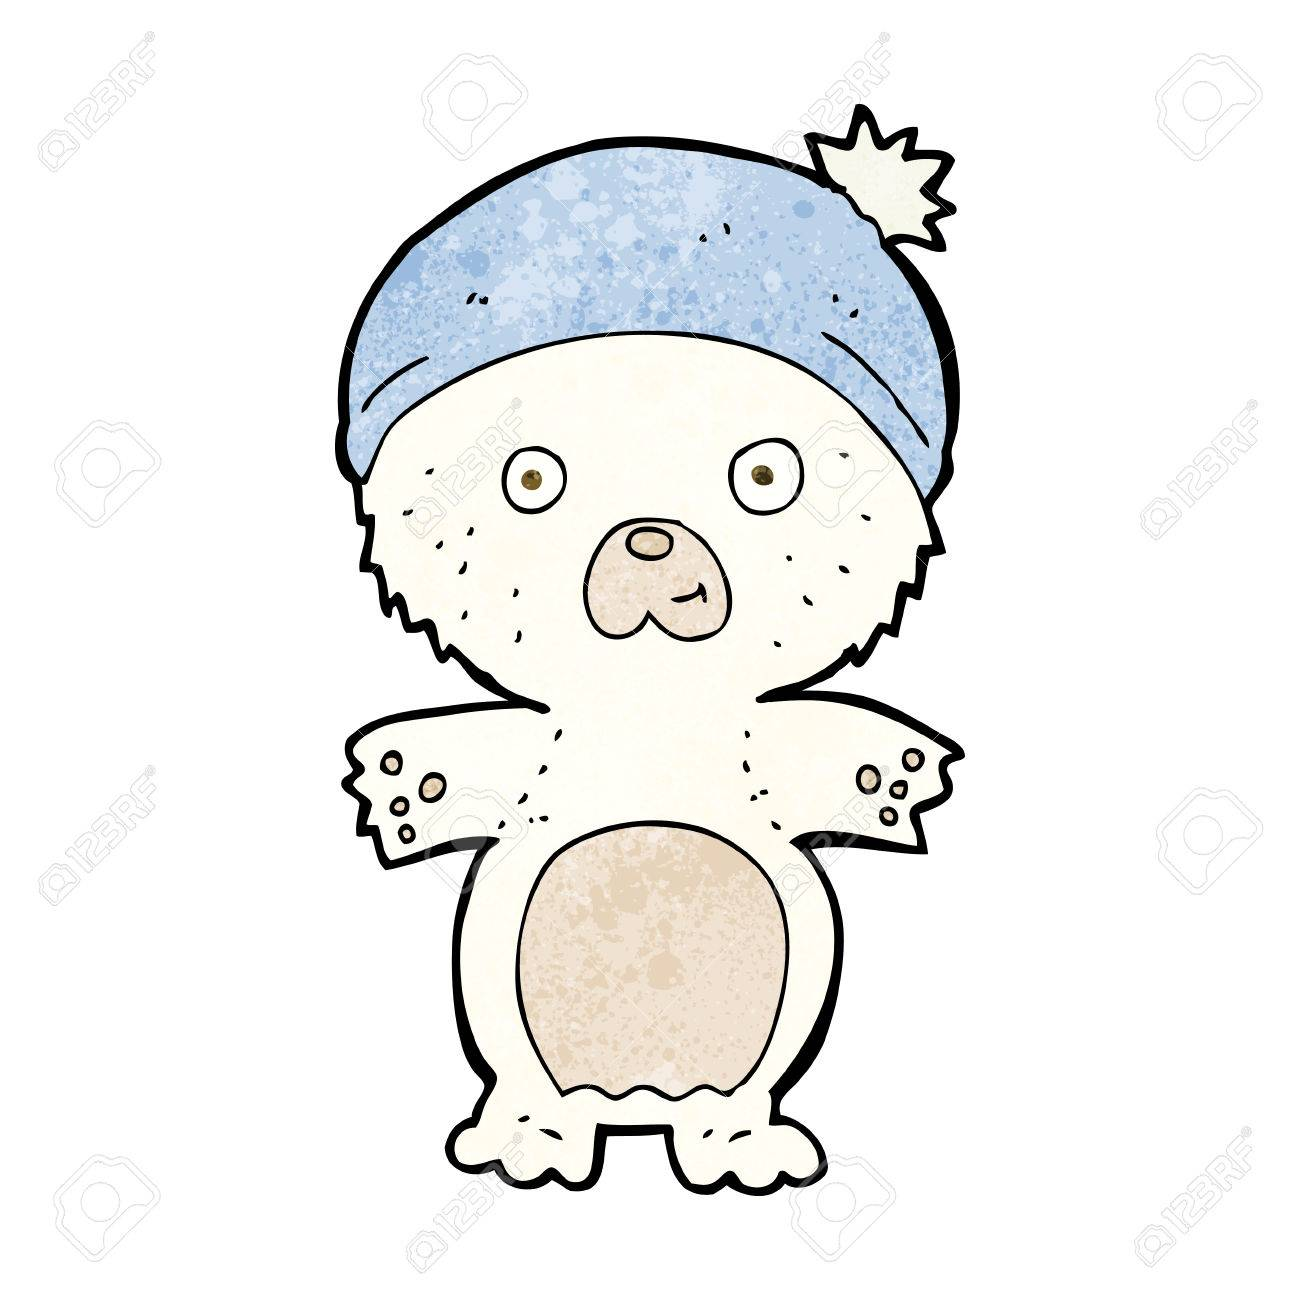 1300x1300 Cartoon Cute Polar Bear In Hat Royalty Free Cliparts, Vectors,